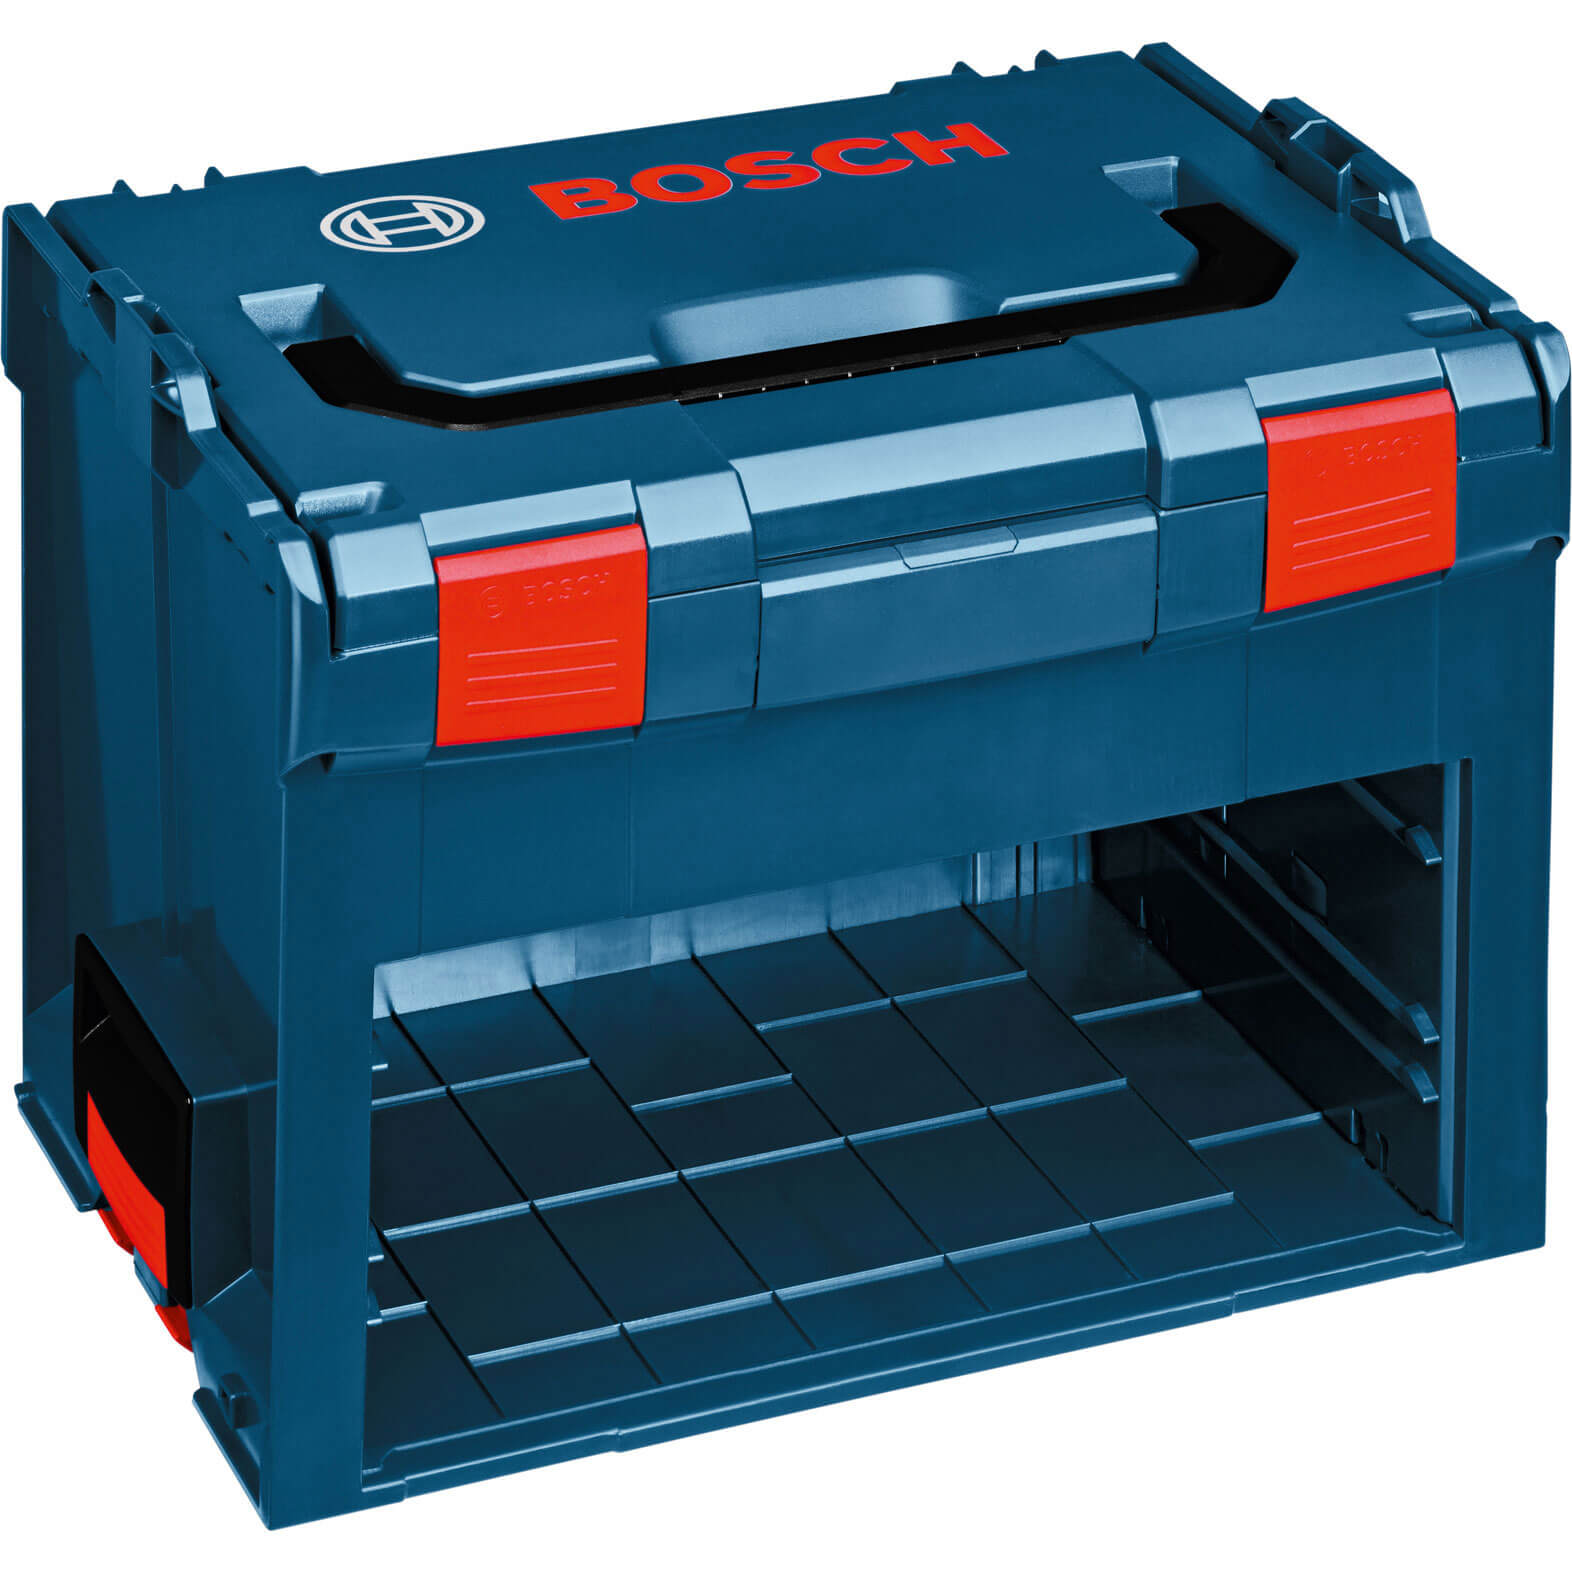 Image of Bosch LS-BOXX 306 Power Tool Case